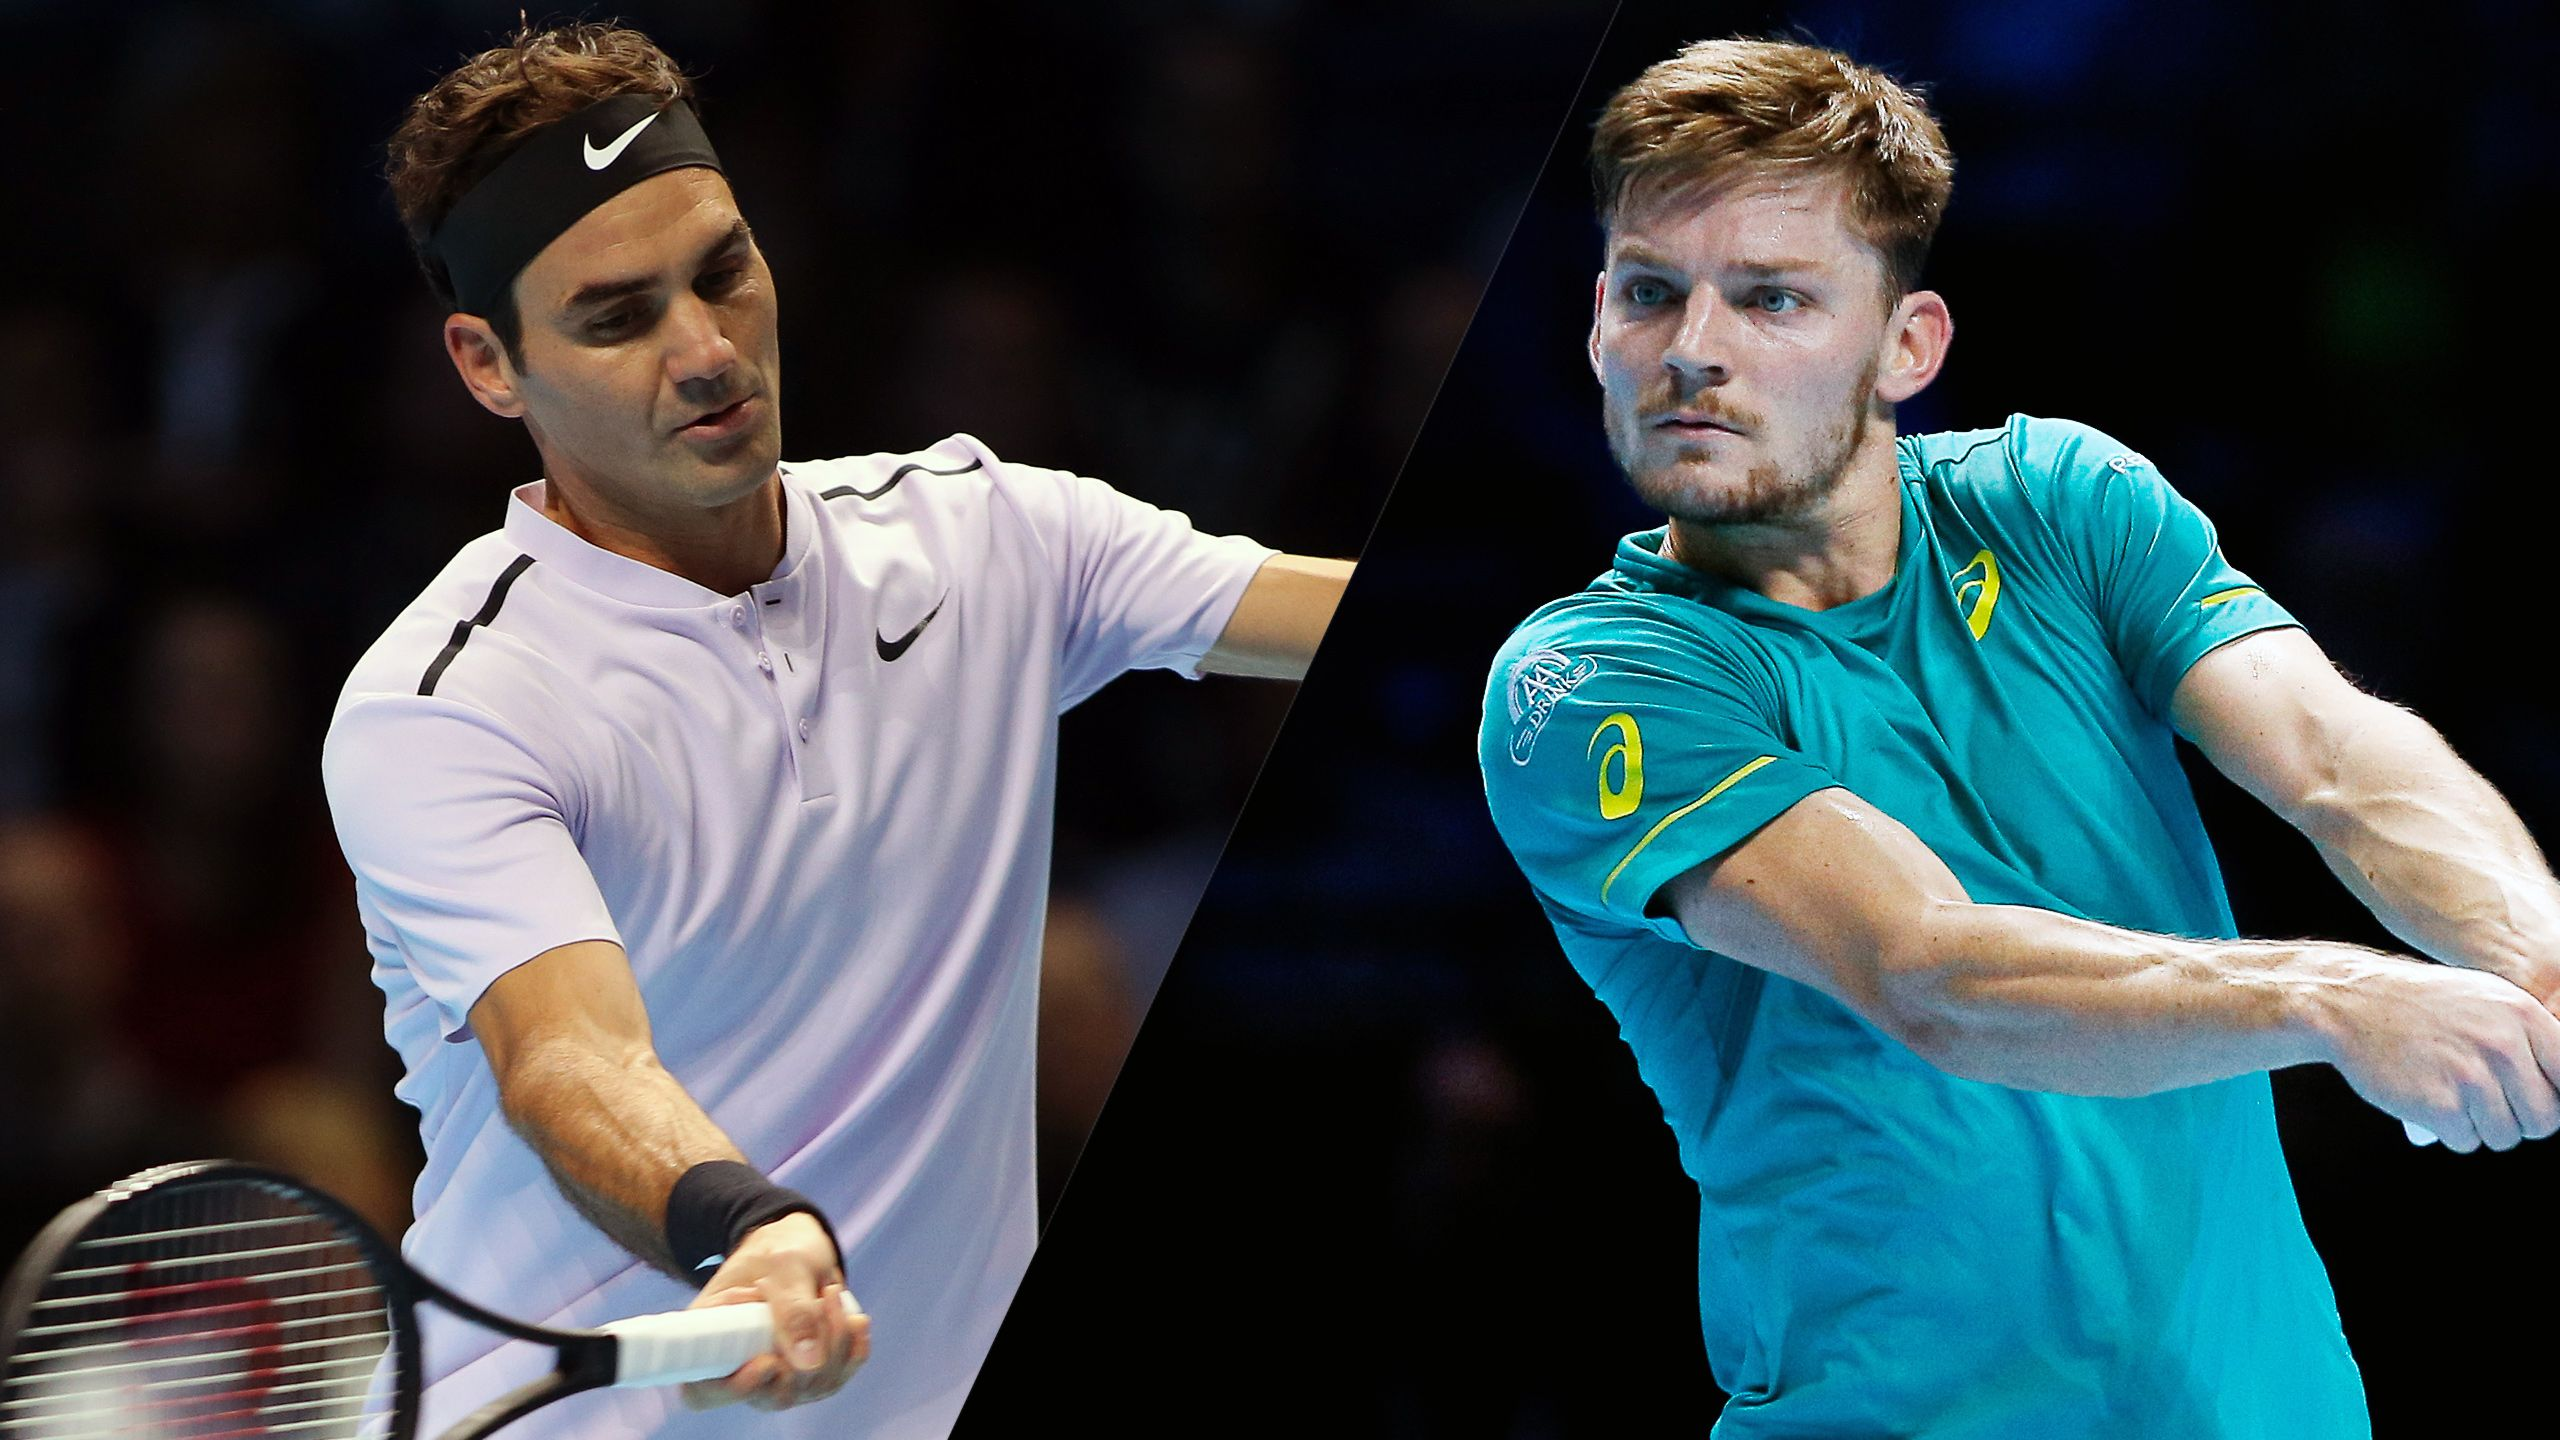 R. Federer vs. D. Goffin - Nitto ATP Finals (Semifinal #1)